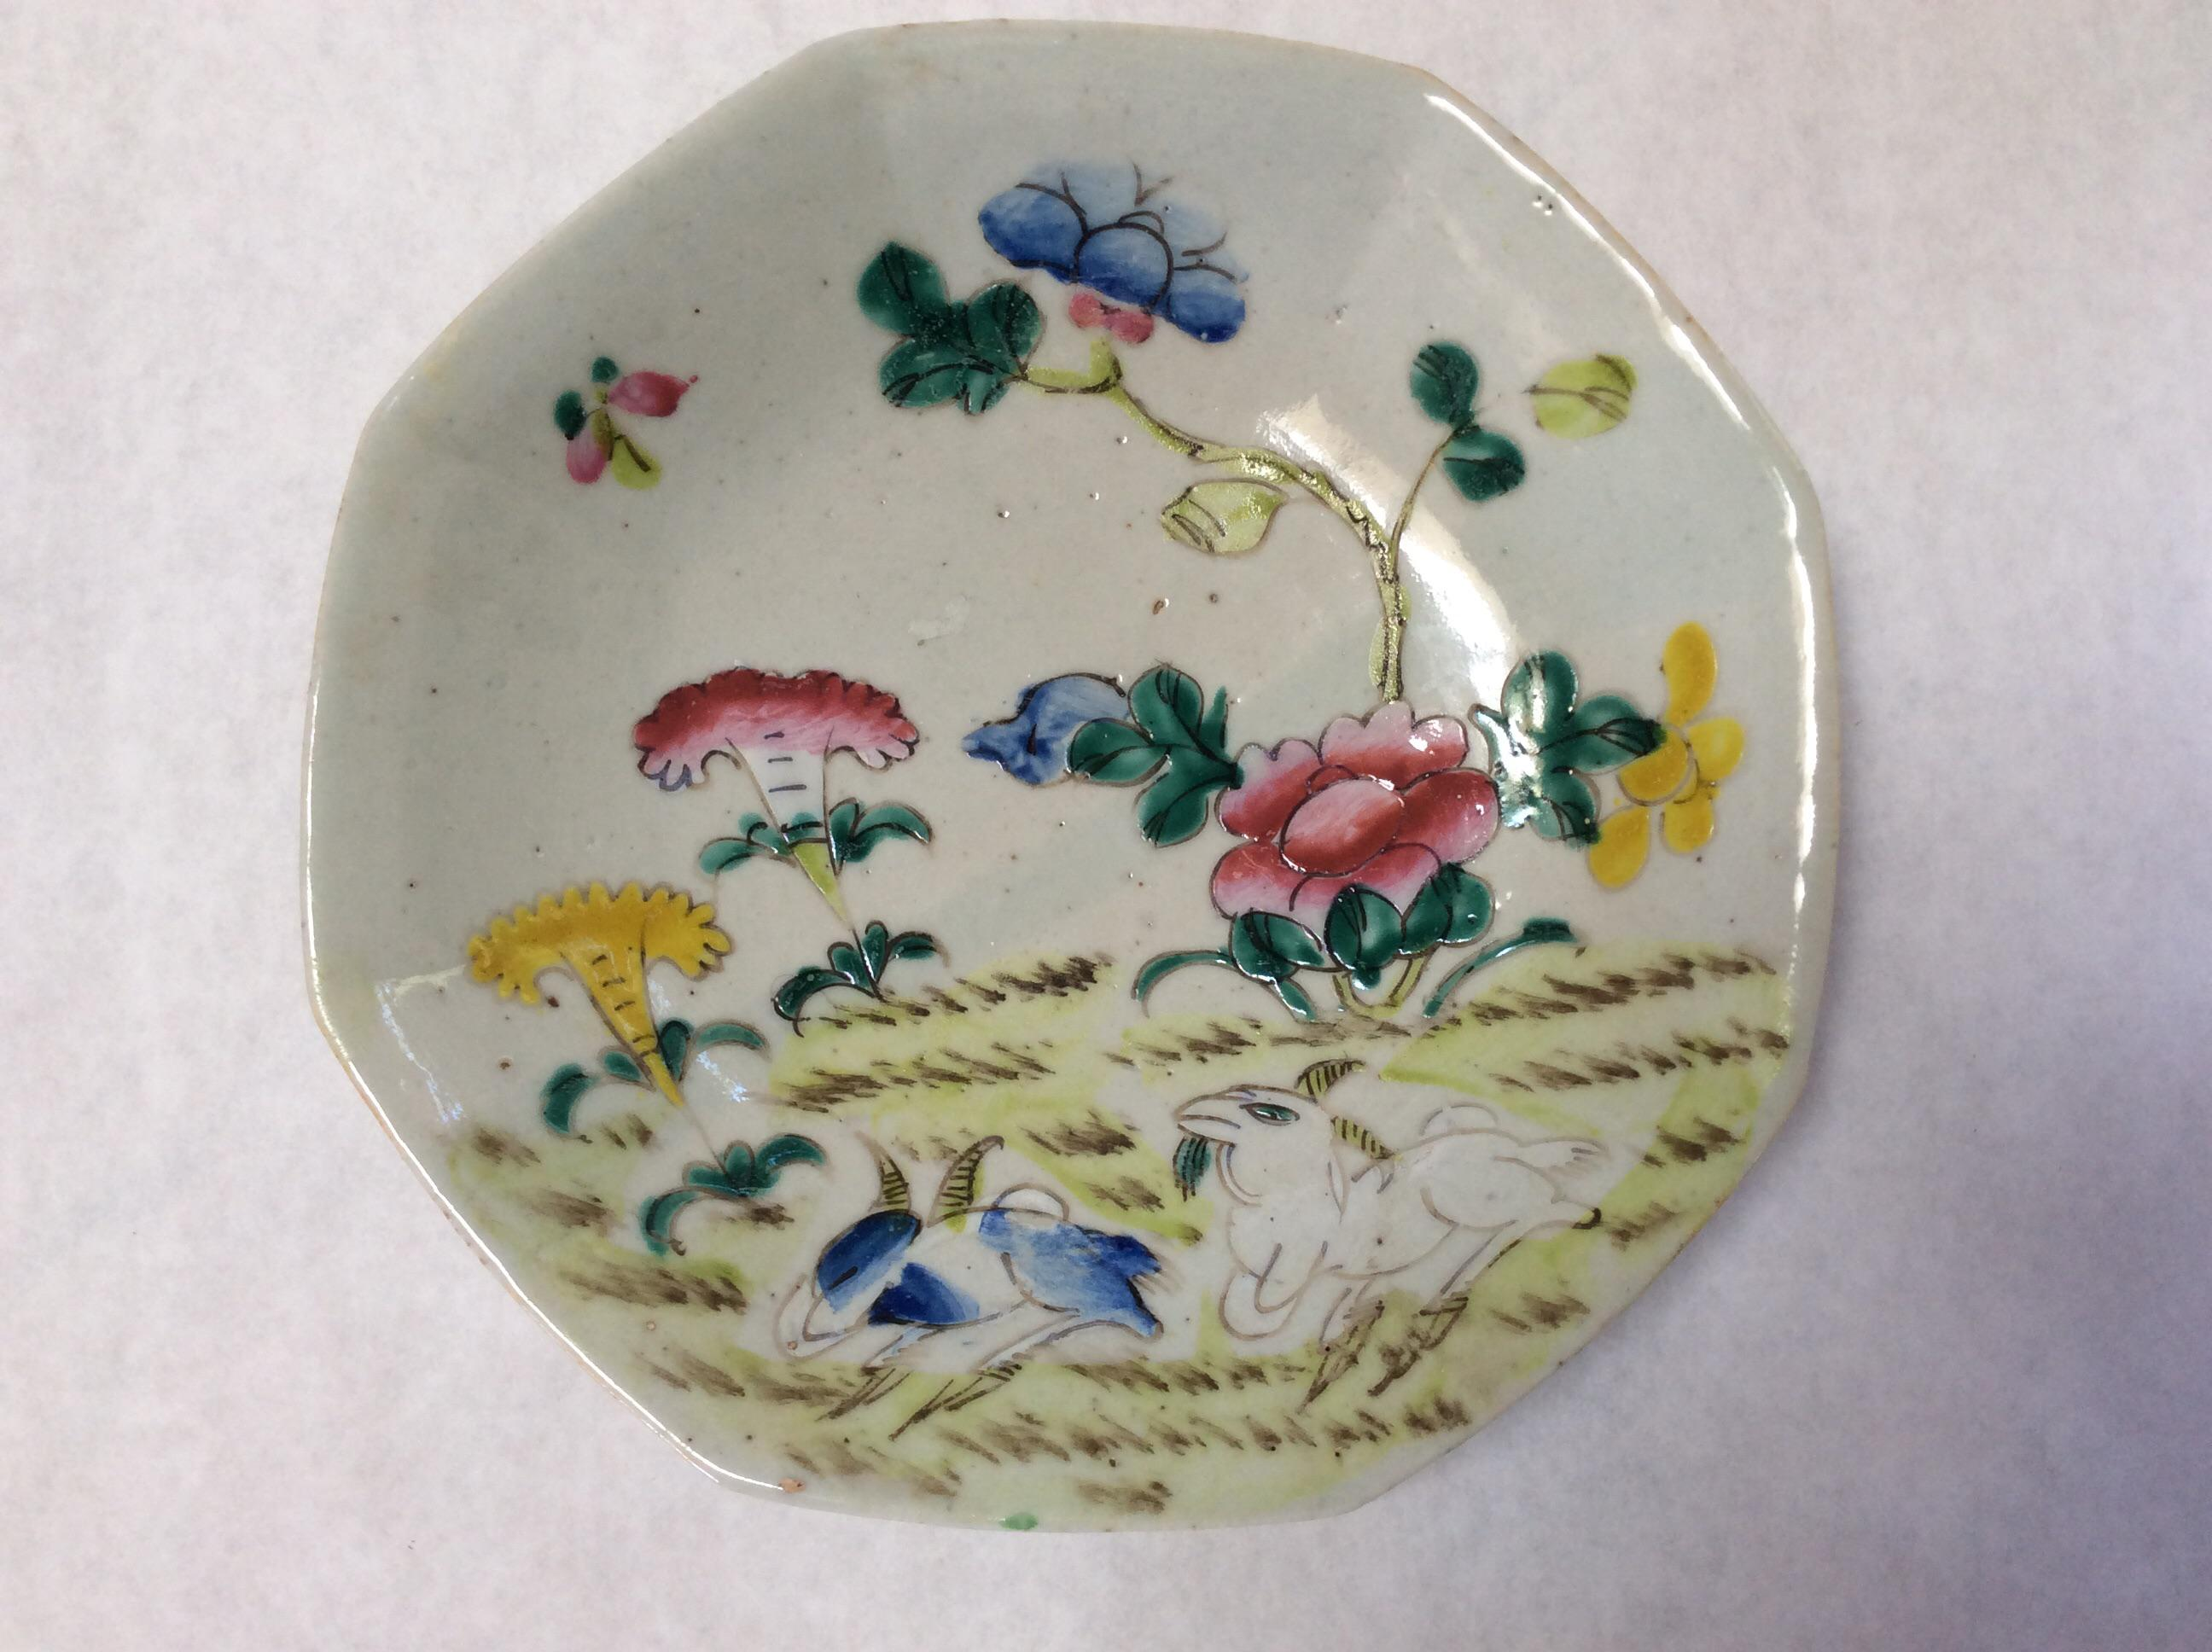 C. 1800u0027s Chinese Decorative Plates - A Pair - Image 4 ...  sc 1 st  Chairish : chinese decorative plates - pezcame.com